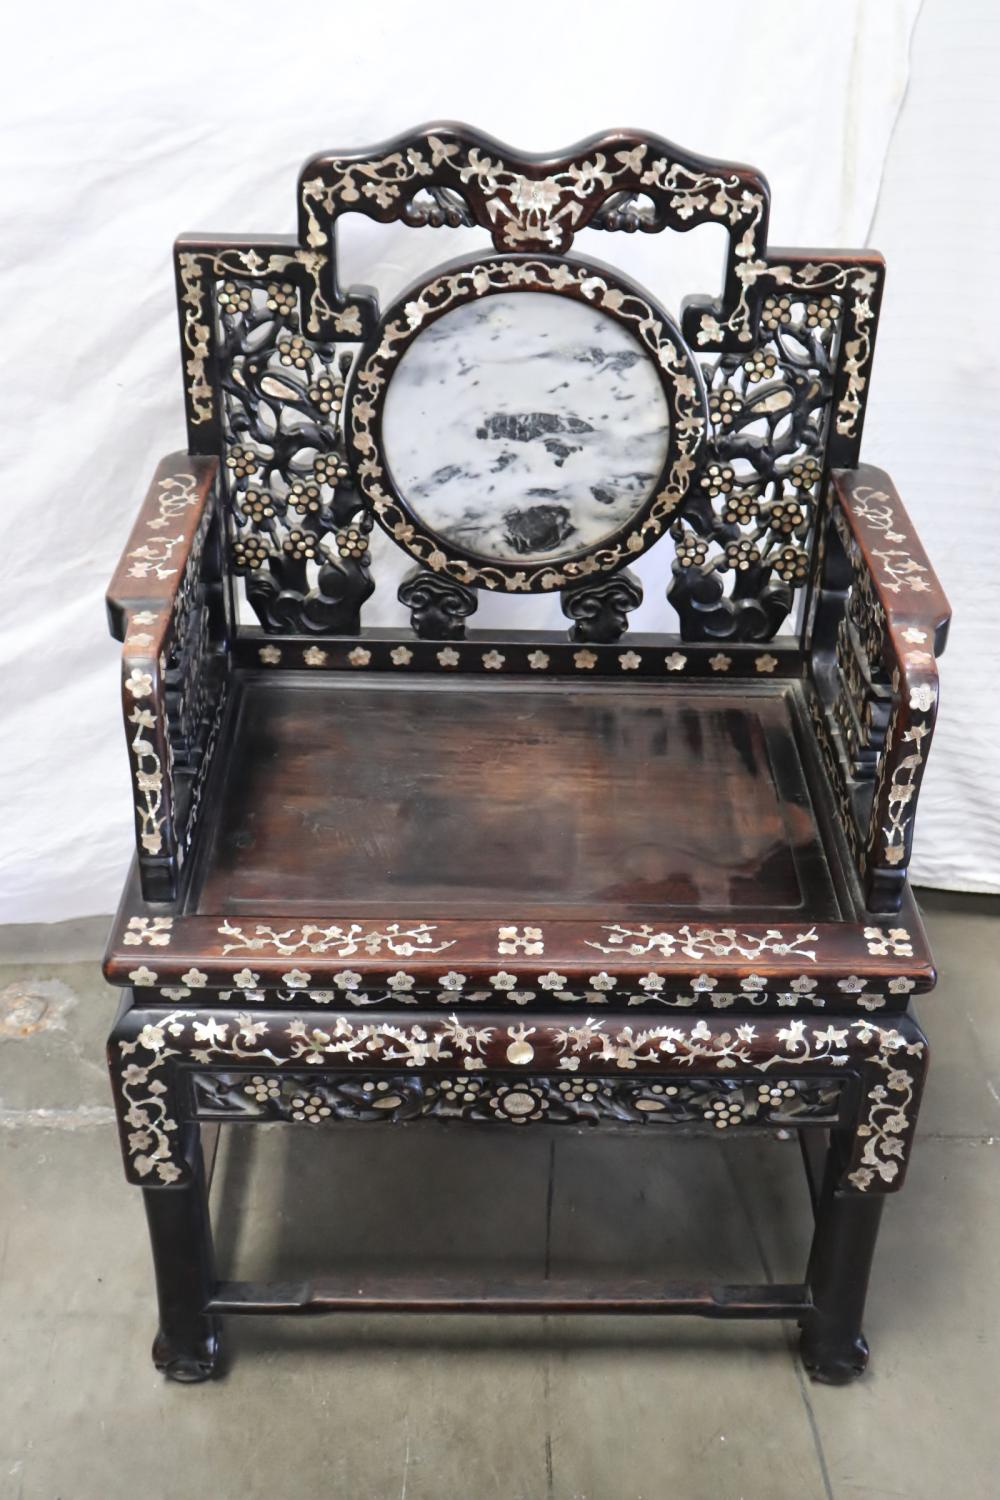 Chinese antique rosewood armchair w/ MOP inlaid